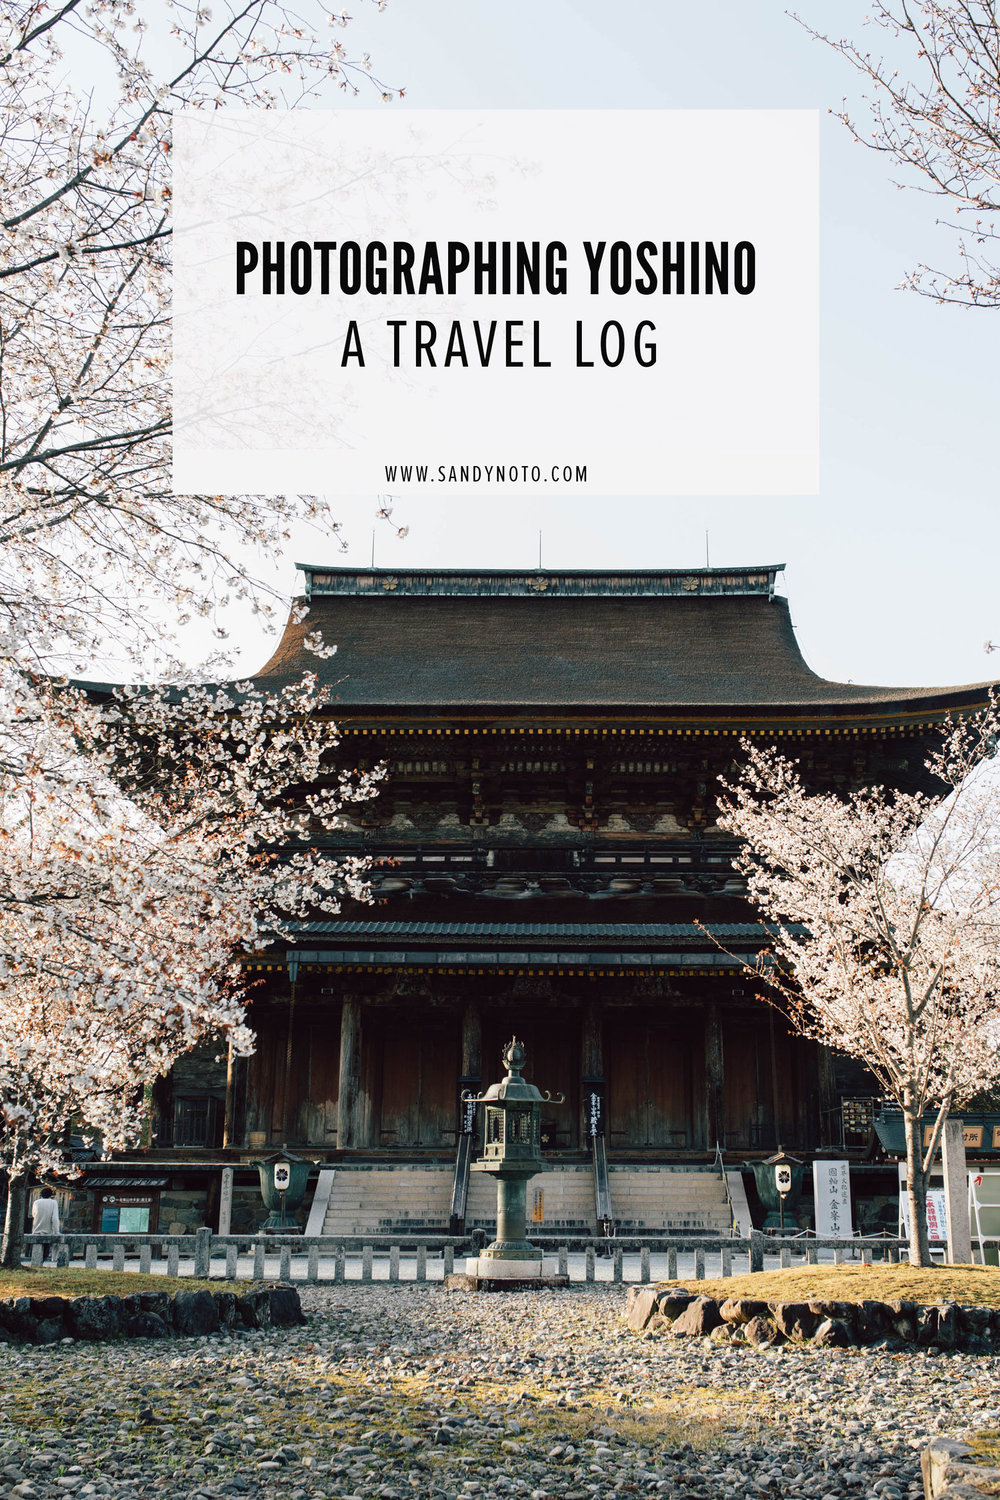 Photographing Yoshino